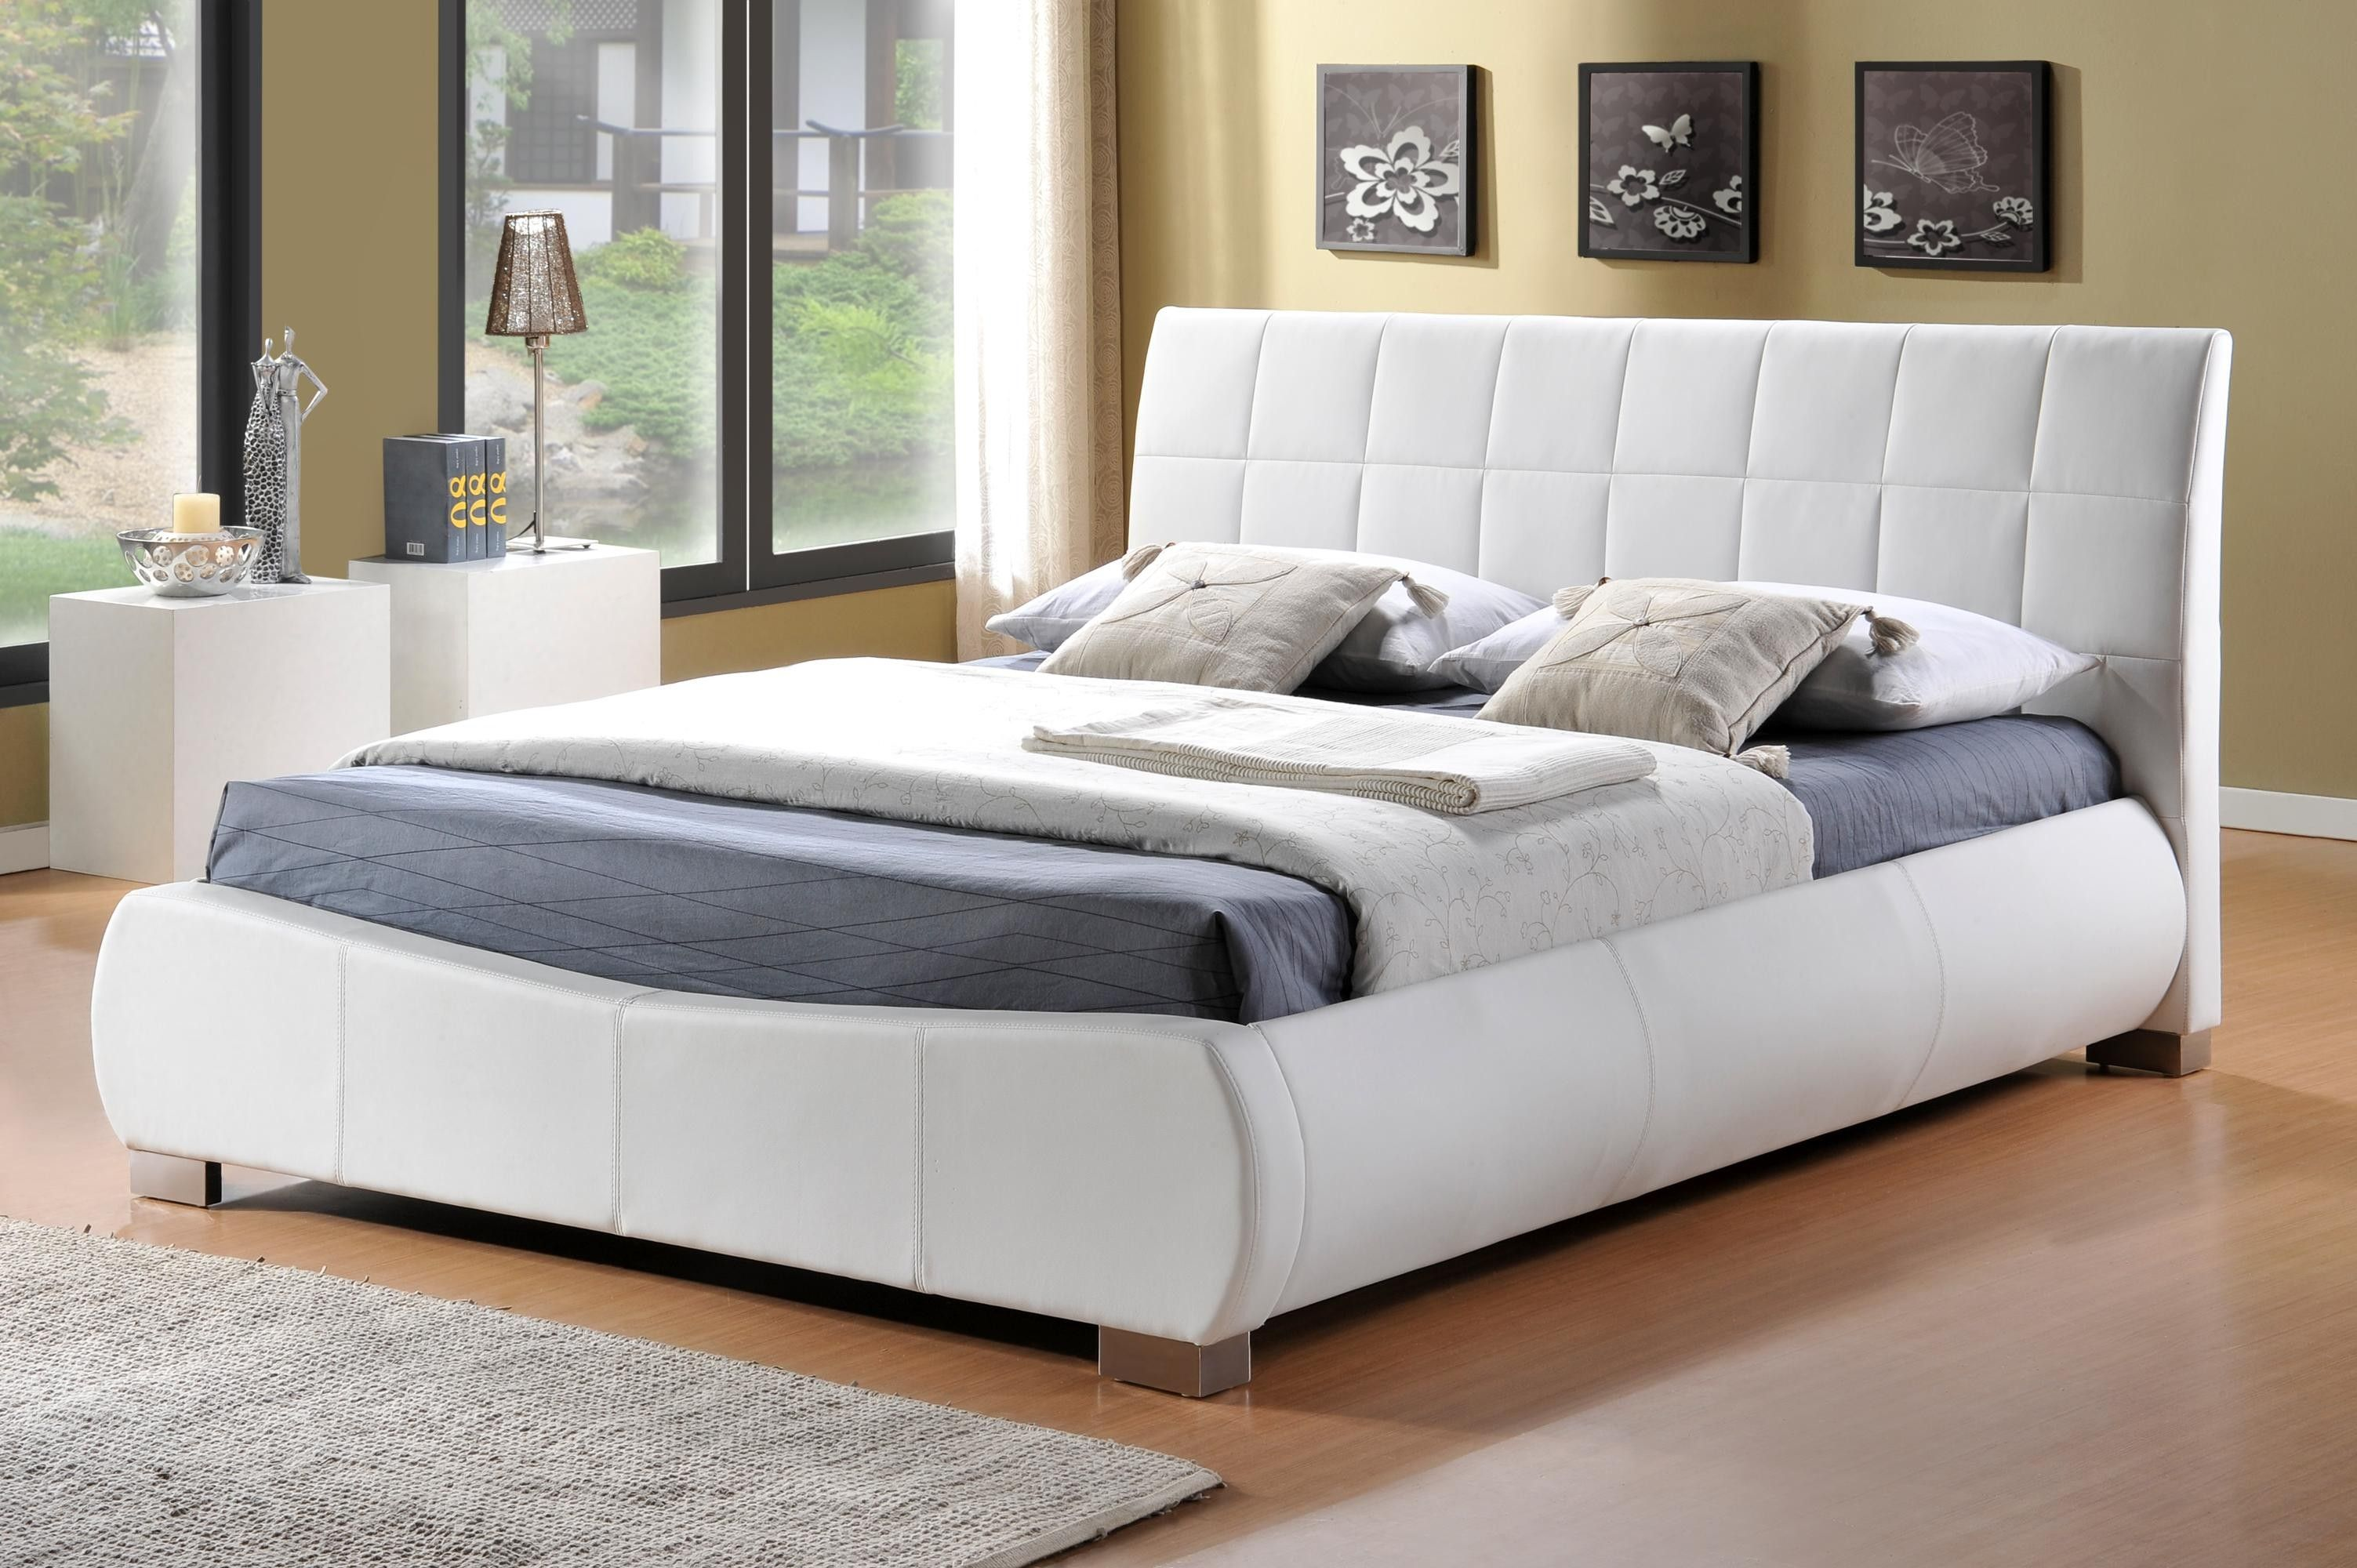 ideas and white decorating gallery design leather s terrific emejing bedroom bed wallpaper picture of set image category latest online